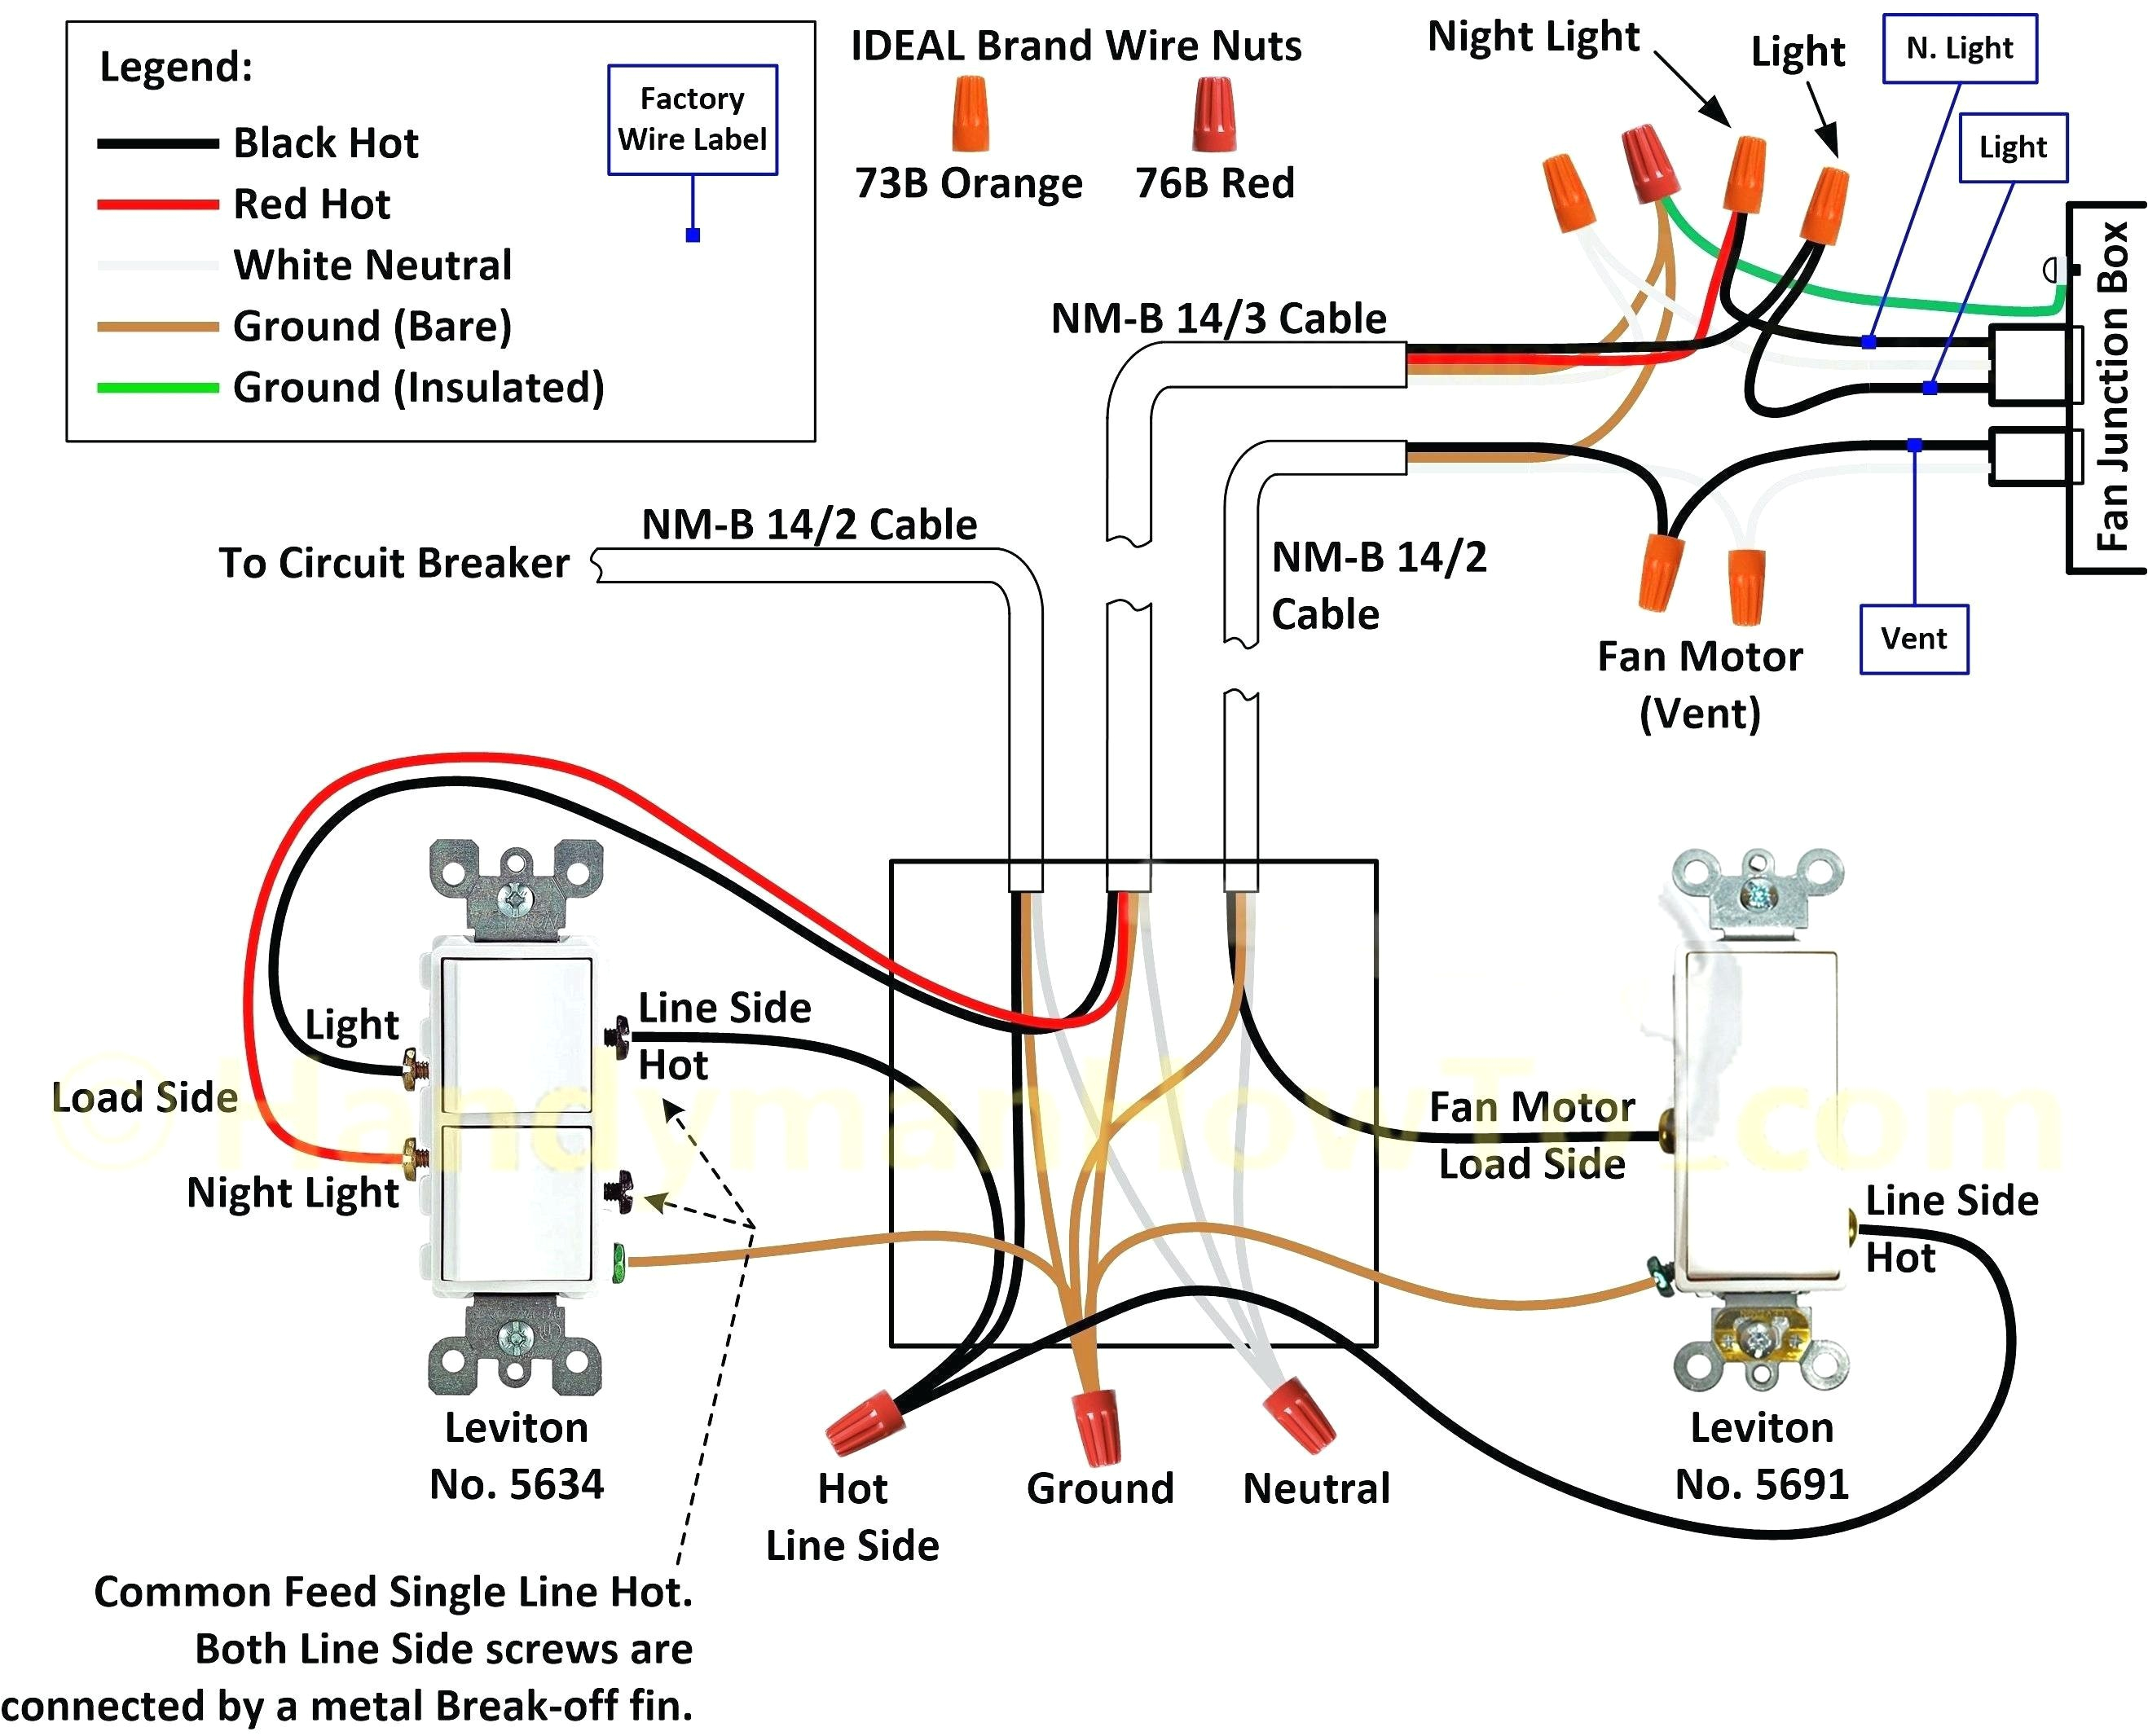 wiring diagrams for lighting circuits e2 80 93 junction box method wiring diagrams for lighting circuits e2 80 93 junction box method